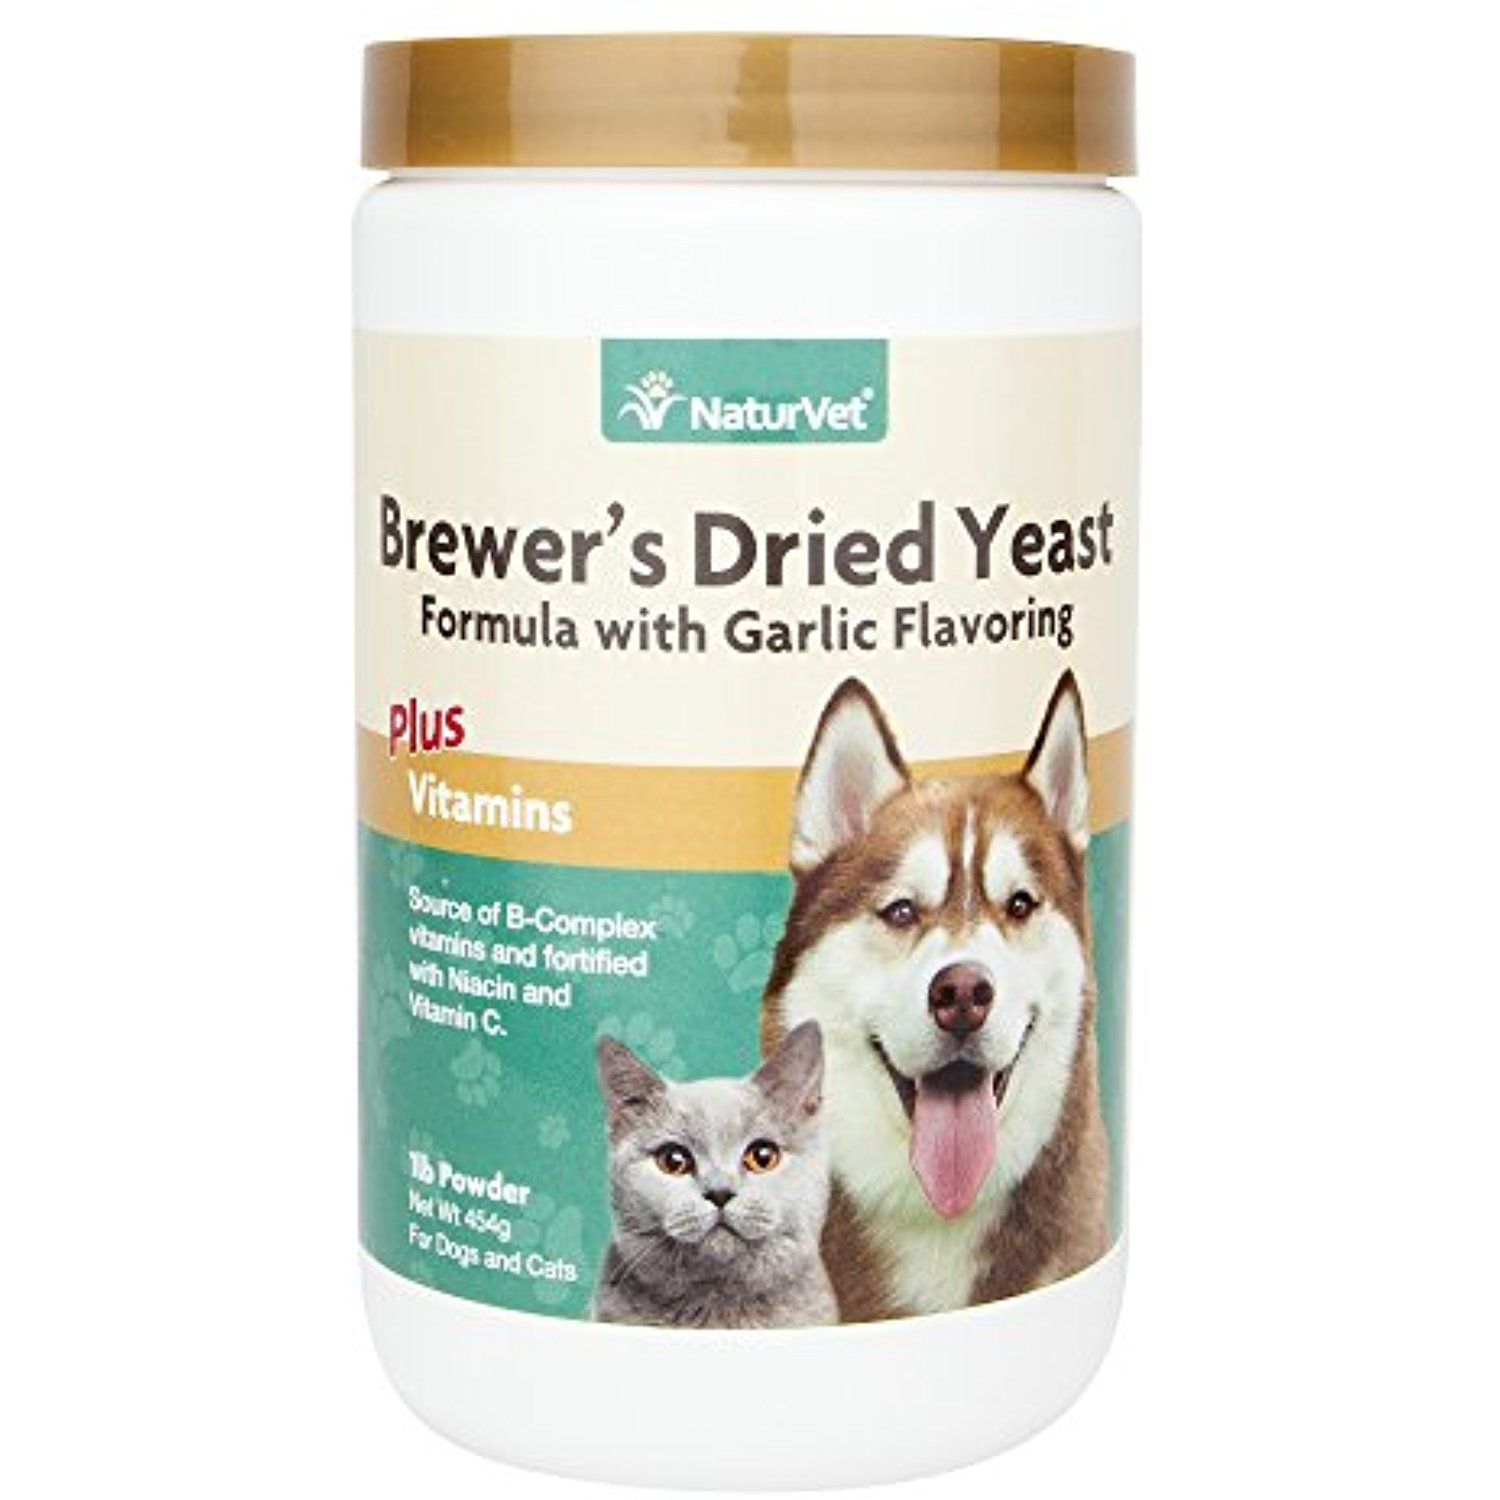 Naturvet Brewer S Dried Yeast Formula With Garlic Flavoring Plus Vitamins For Dogs And Cats 1 Lb Powder Made In Brewers Yeast For Dogs Dry Yeast Can Dogs Eat